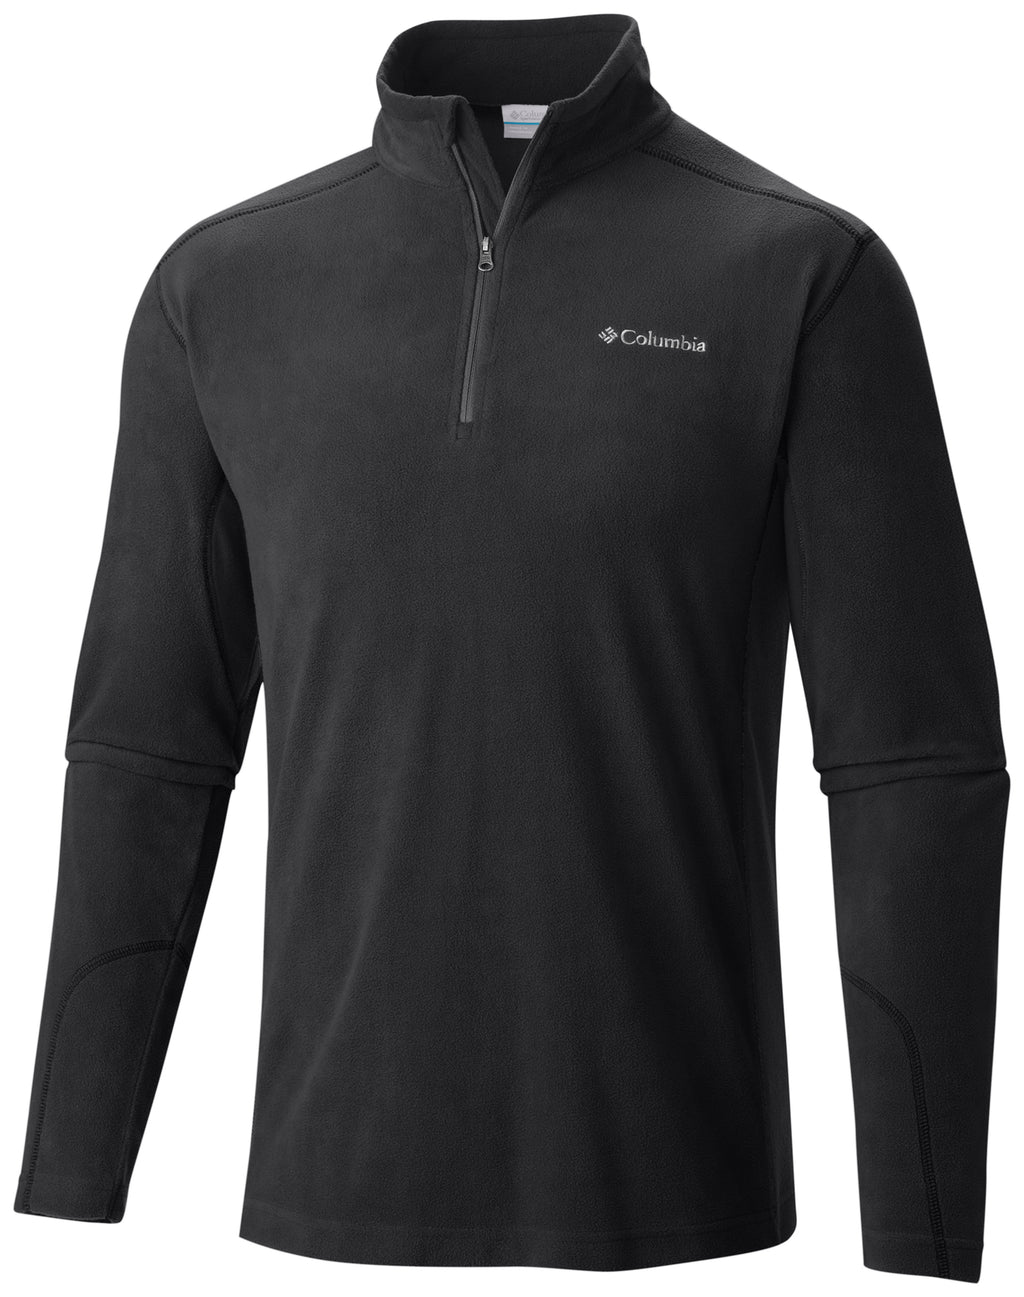 Columbia Men's Klamath Range II Half Zip promotional fleece